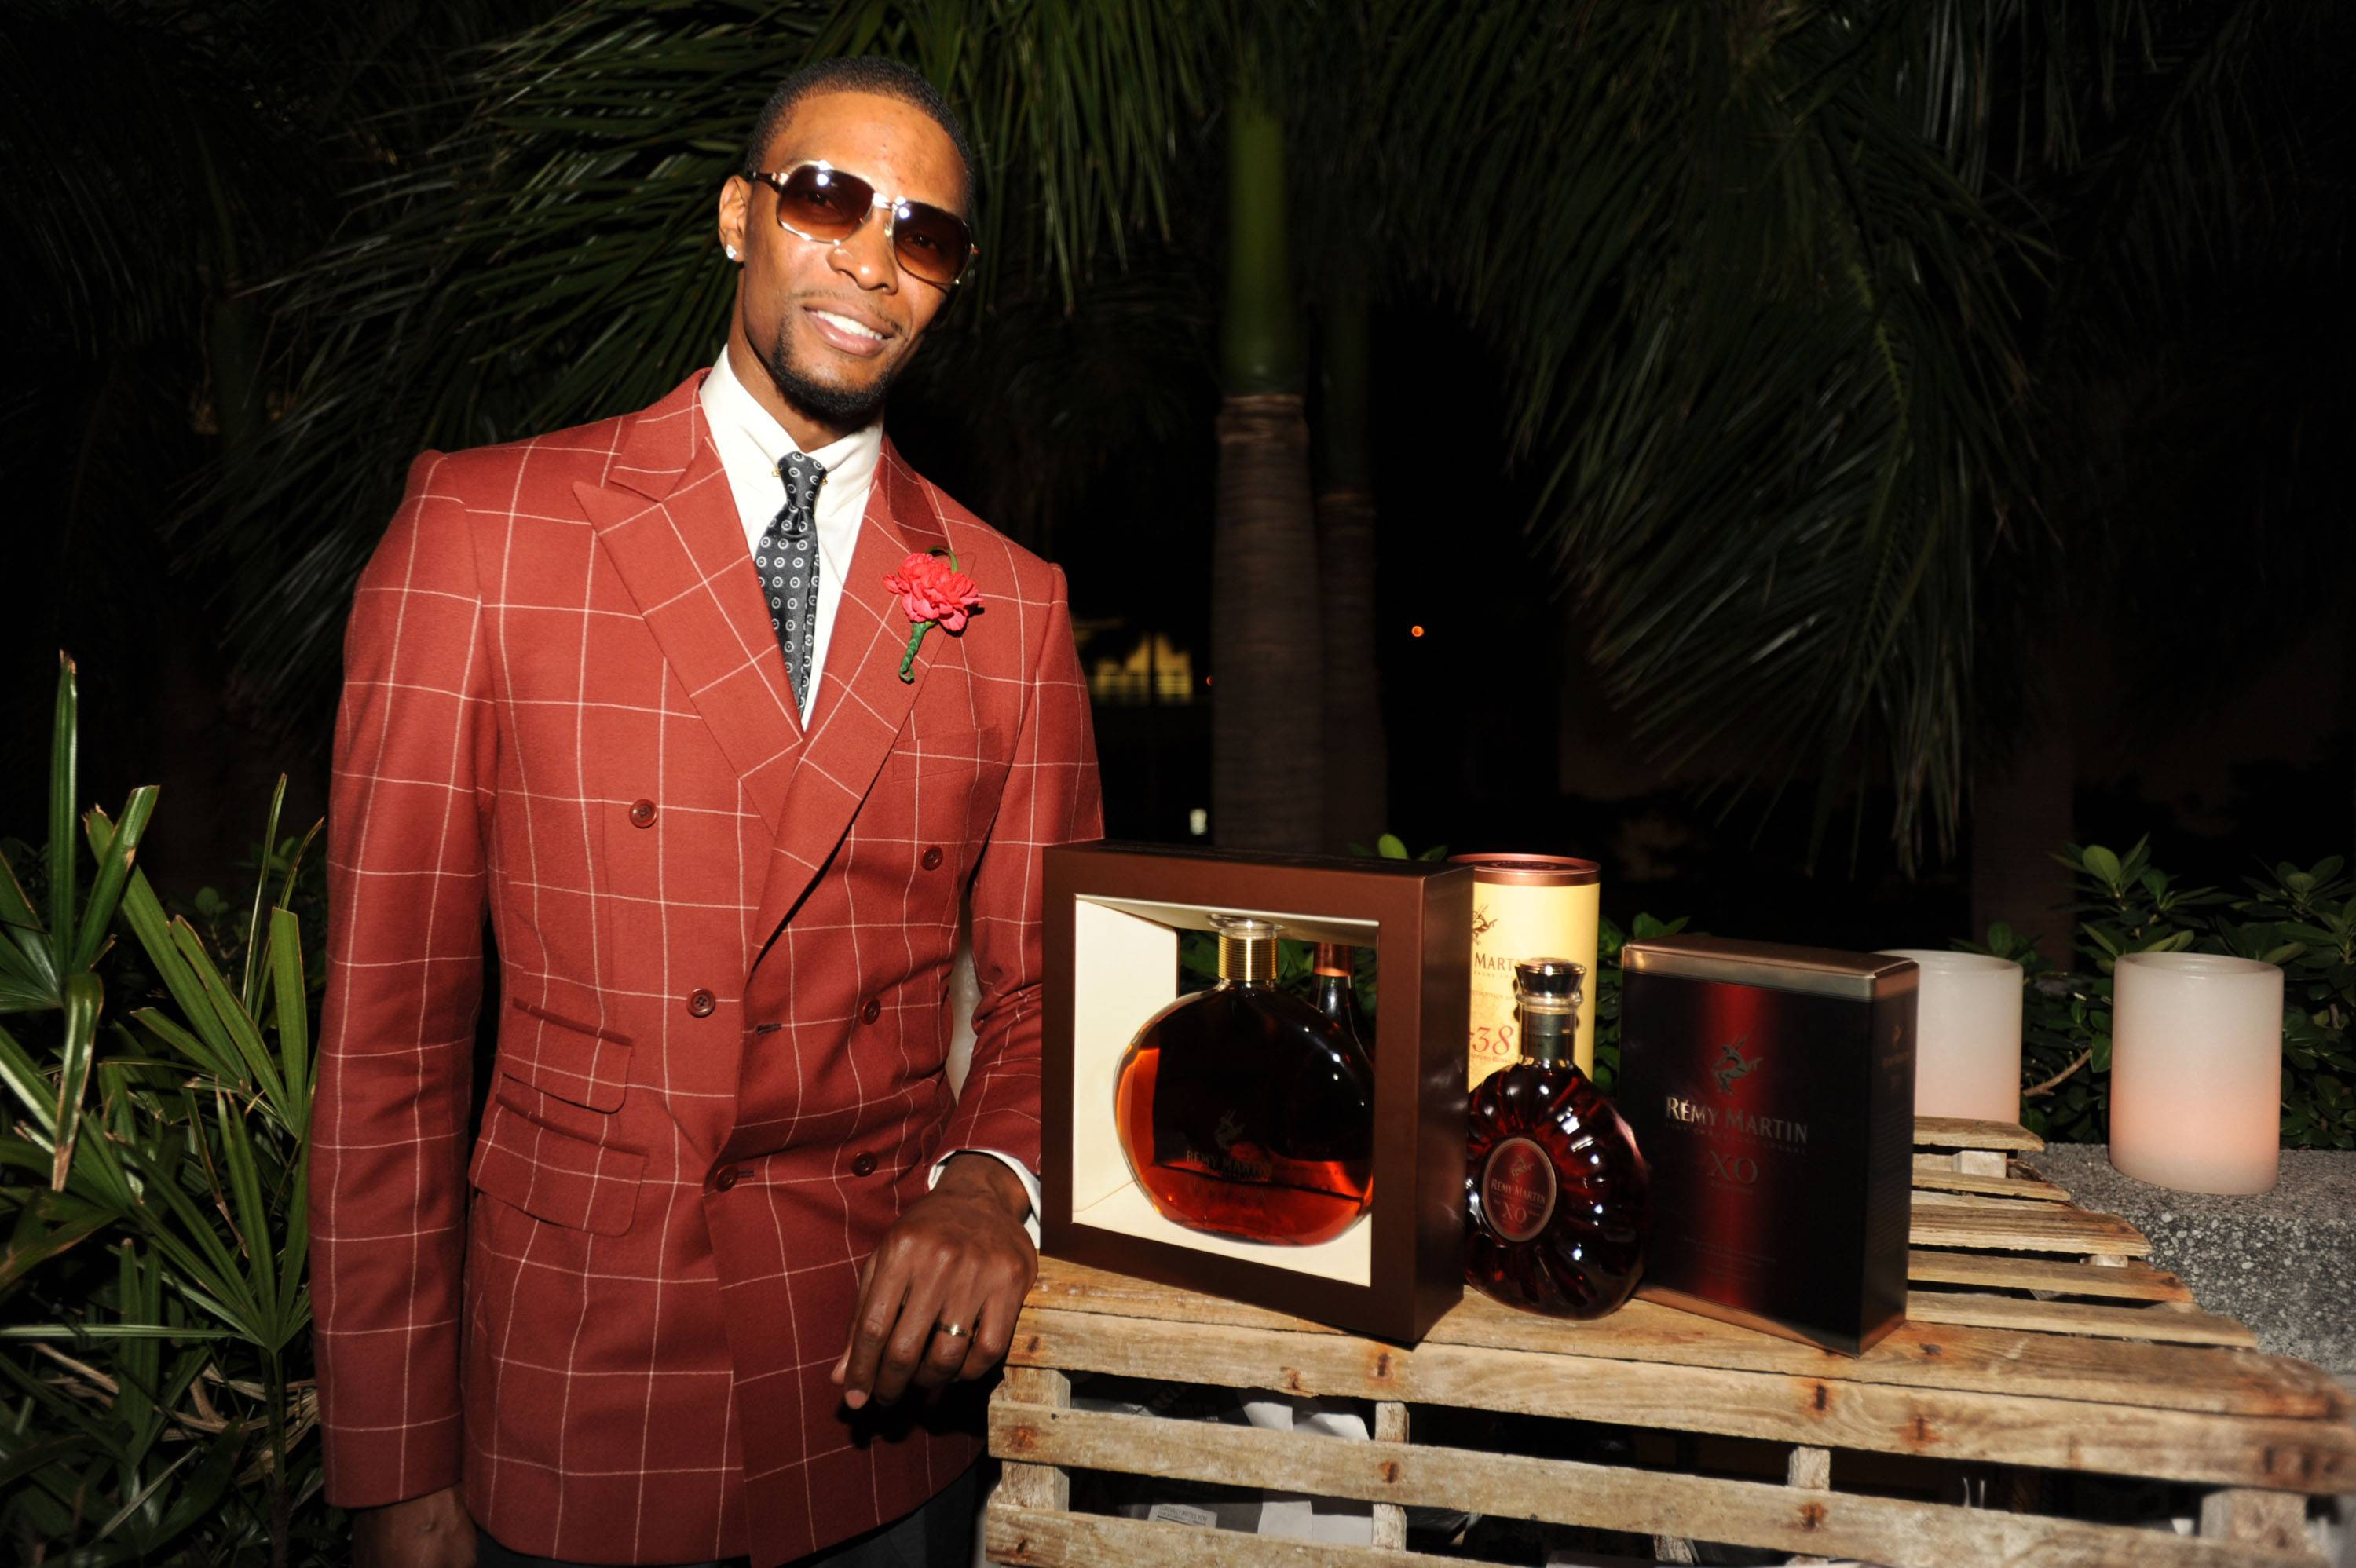 Chris Bosh with his birthday gift from Remy Martin, a discontinued bottle of Remy Martin Extra